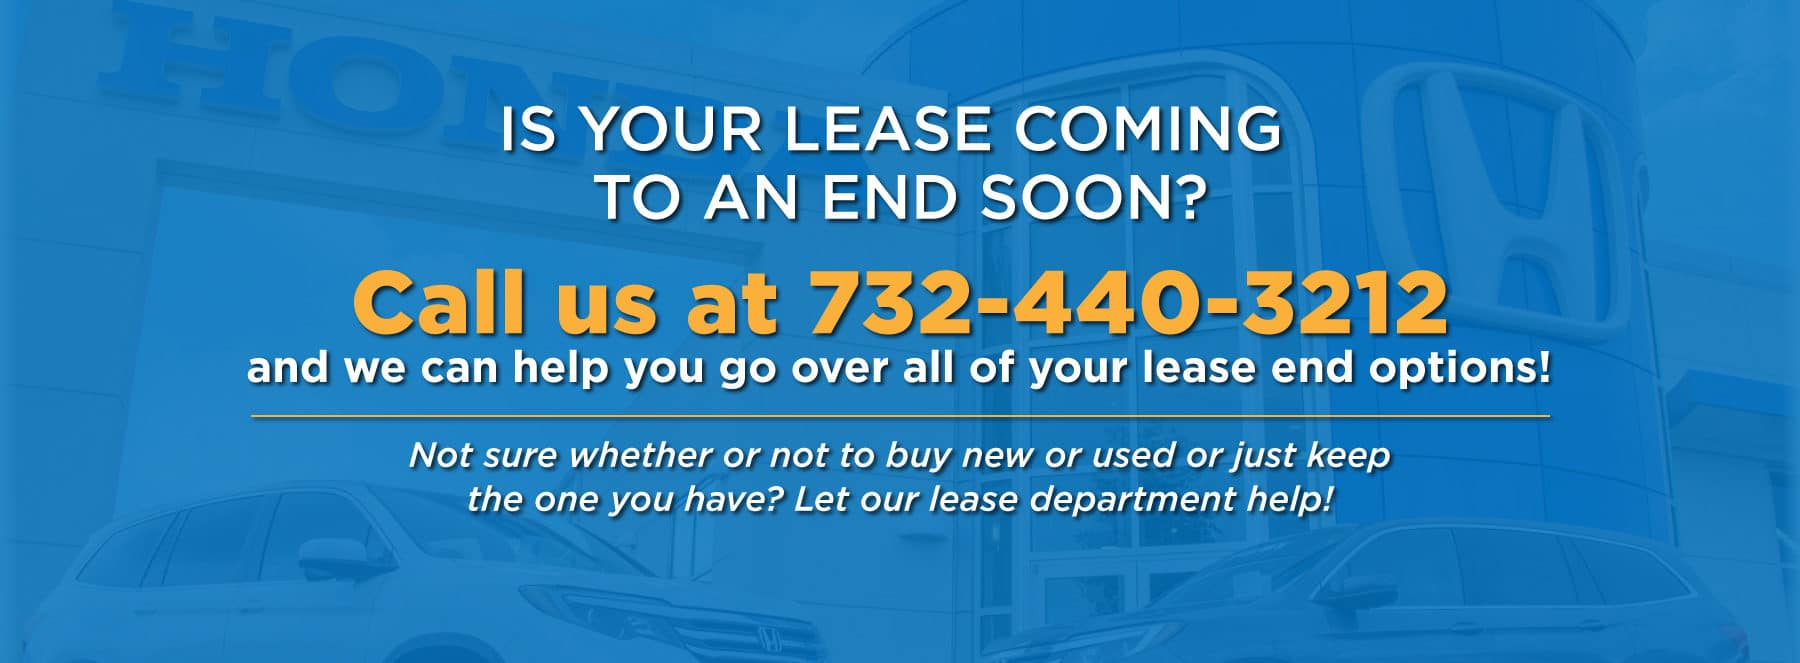 Is your lease coming to an end soon?